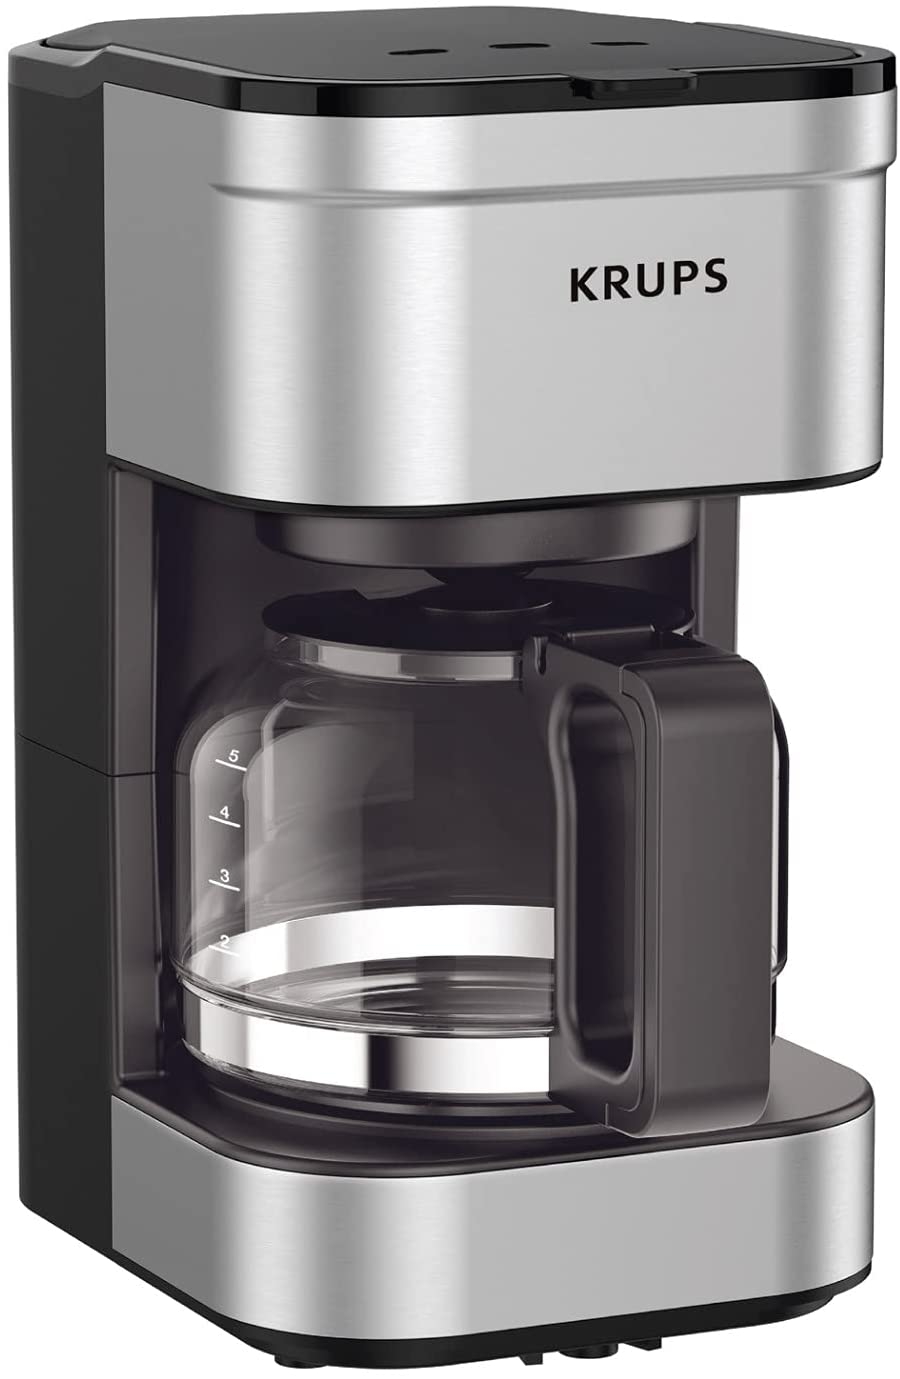 Krups Simply Brew Compact Coffee Maker